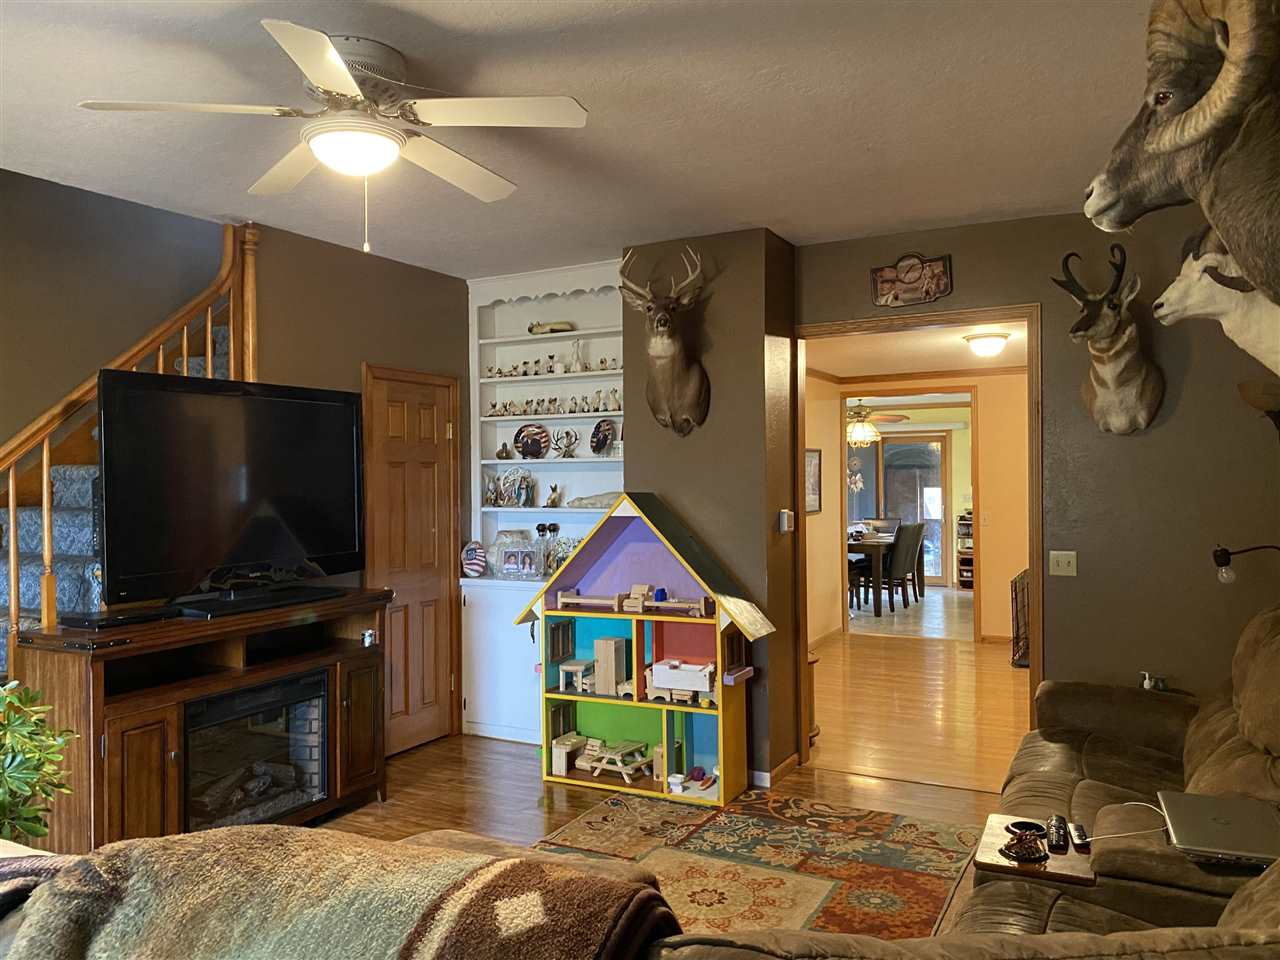 MLS# 201532 for Sale